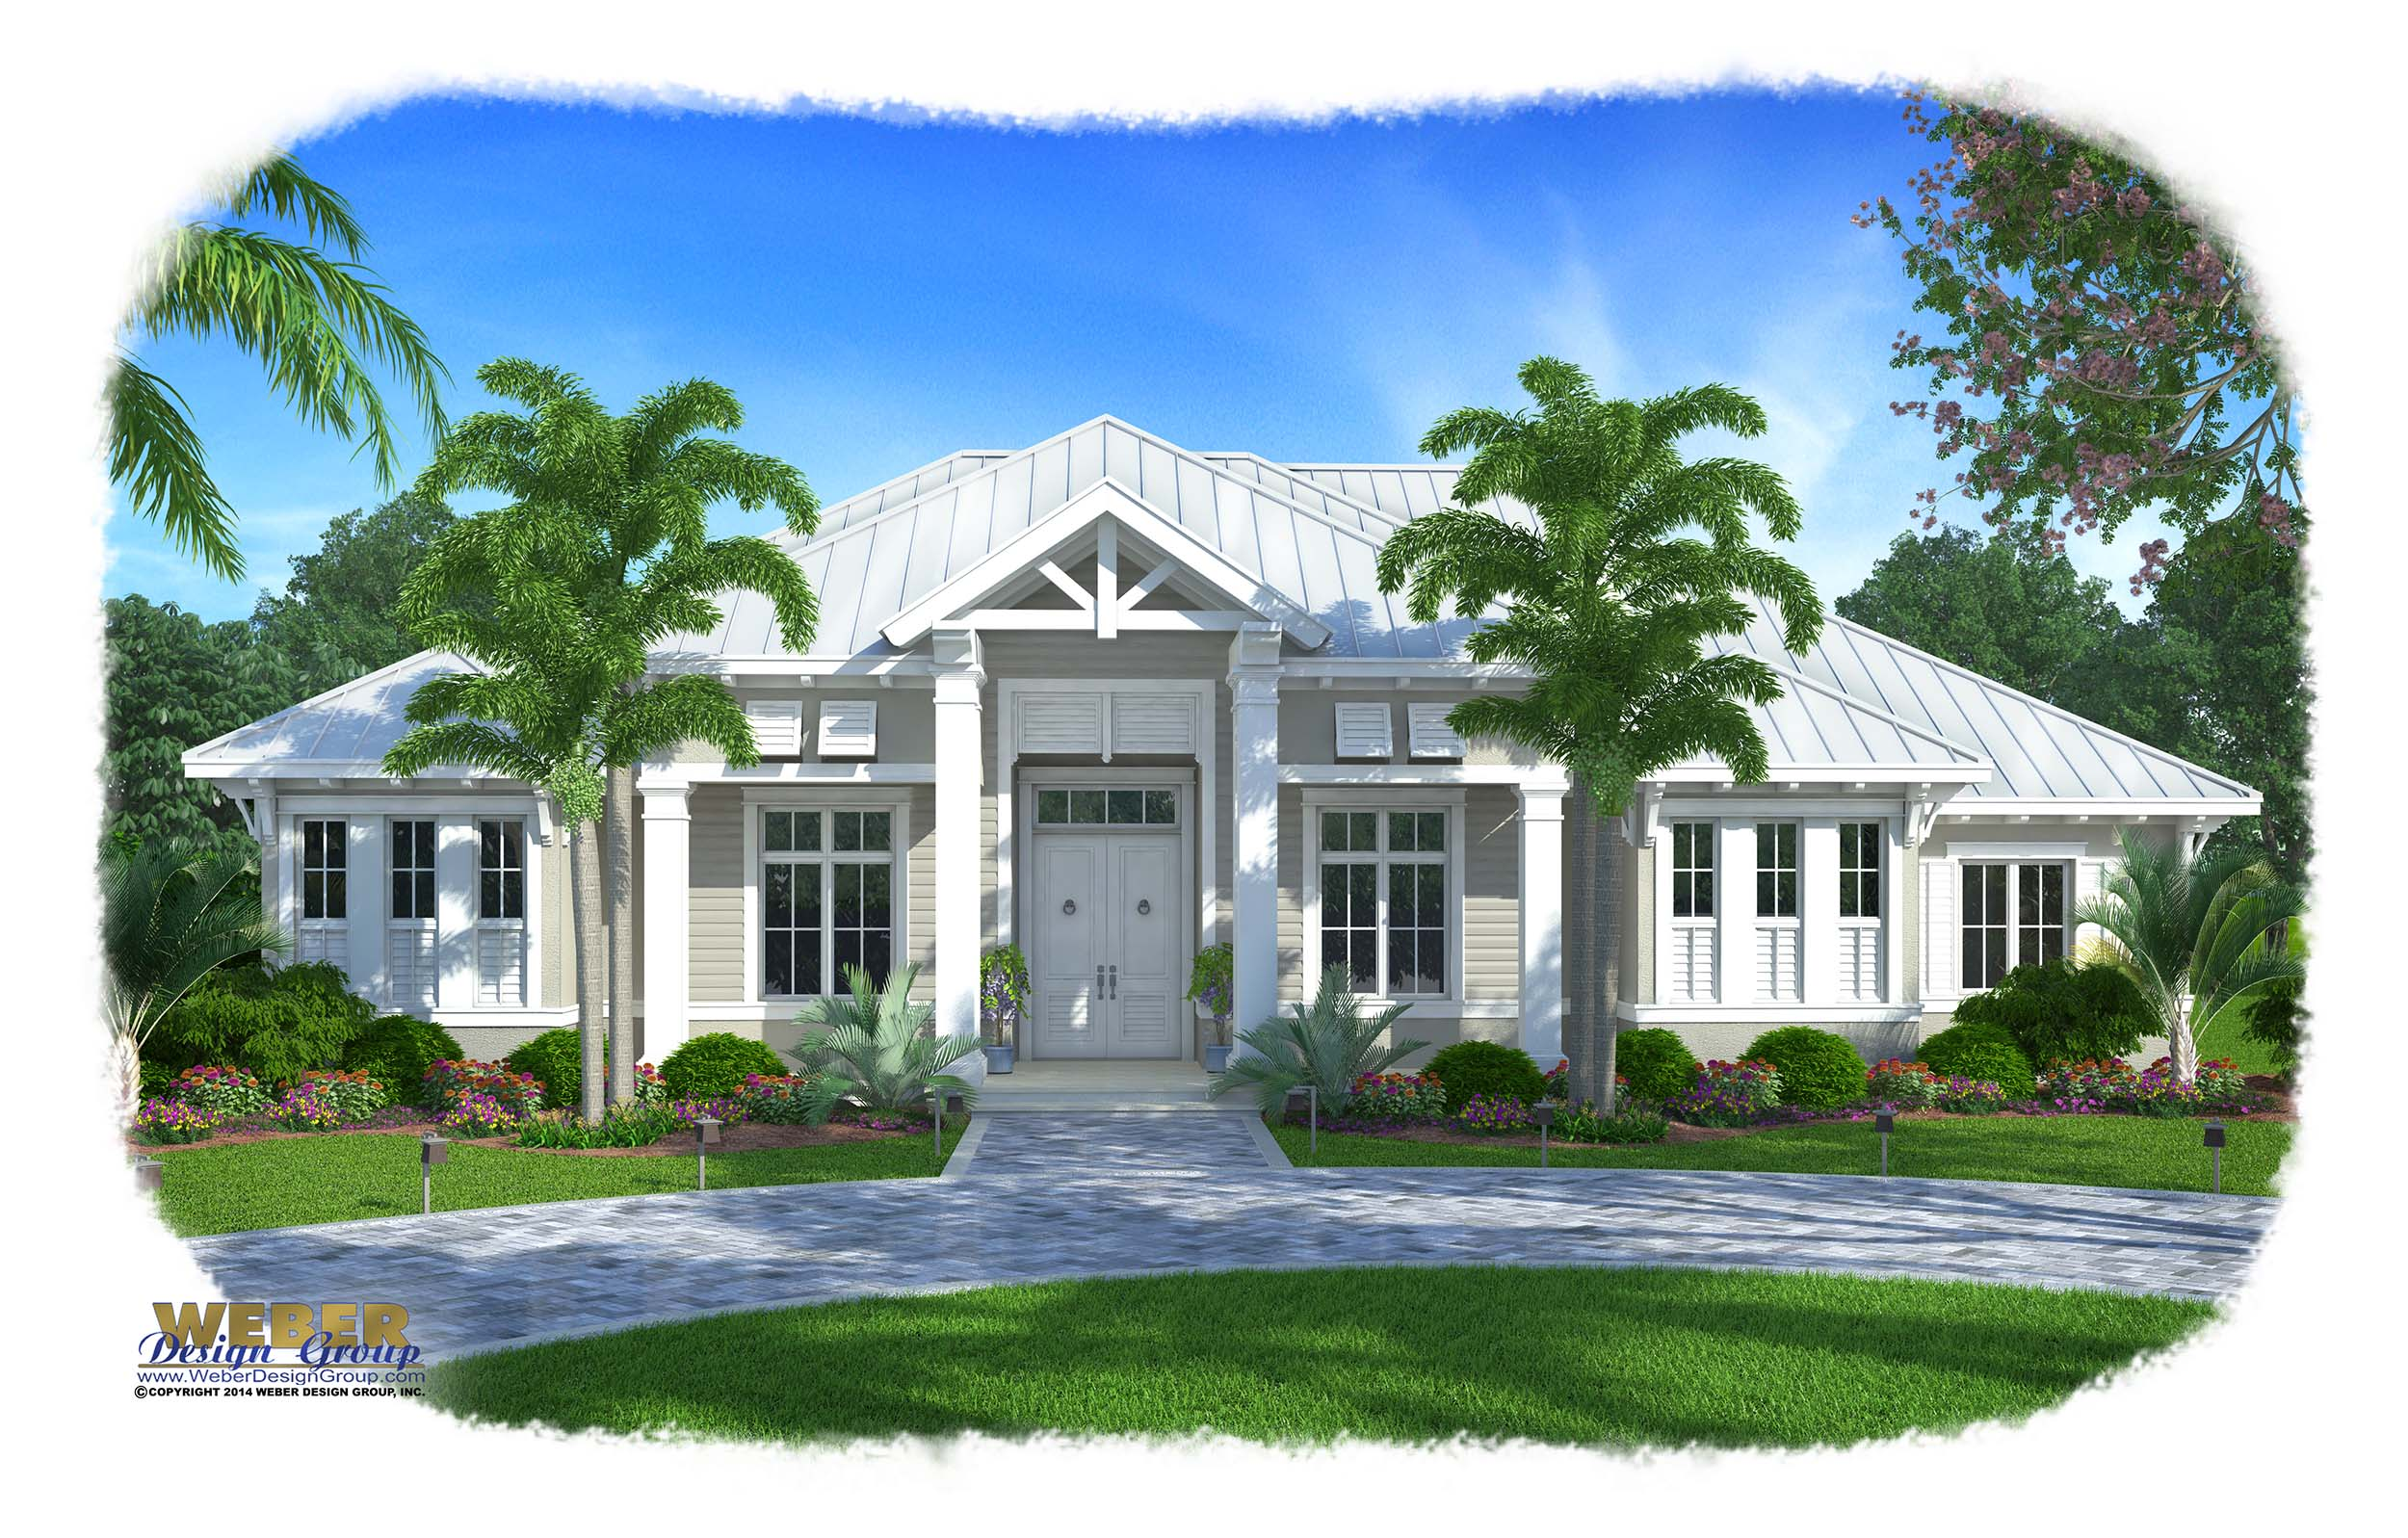 Florida cottage house plans Floridian house plans